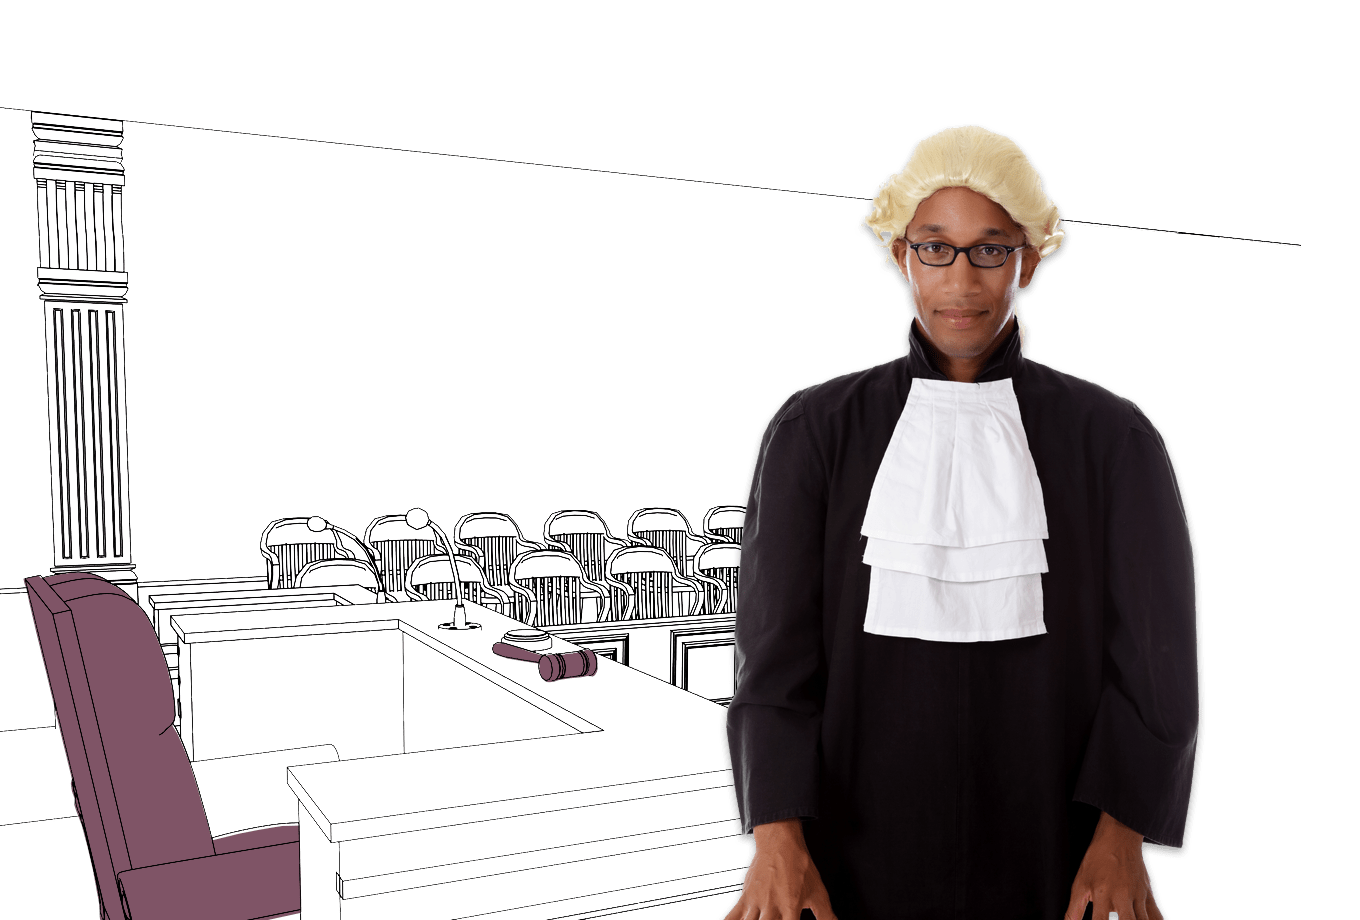 legal services insurance illustration of judge in courtroom